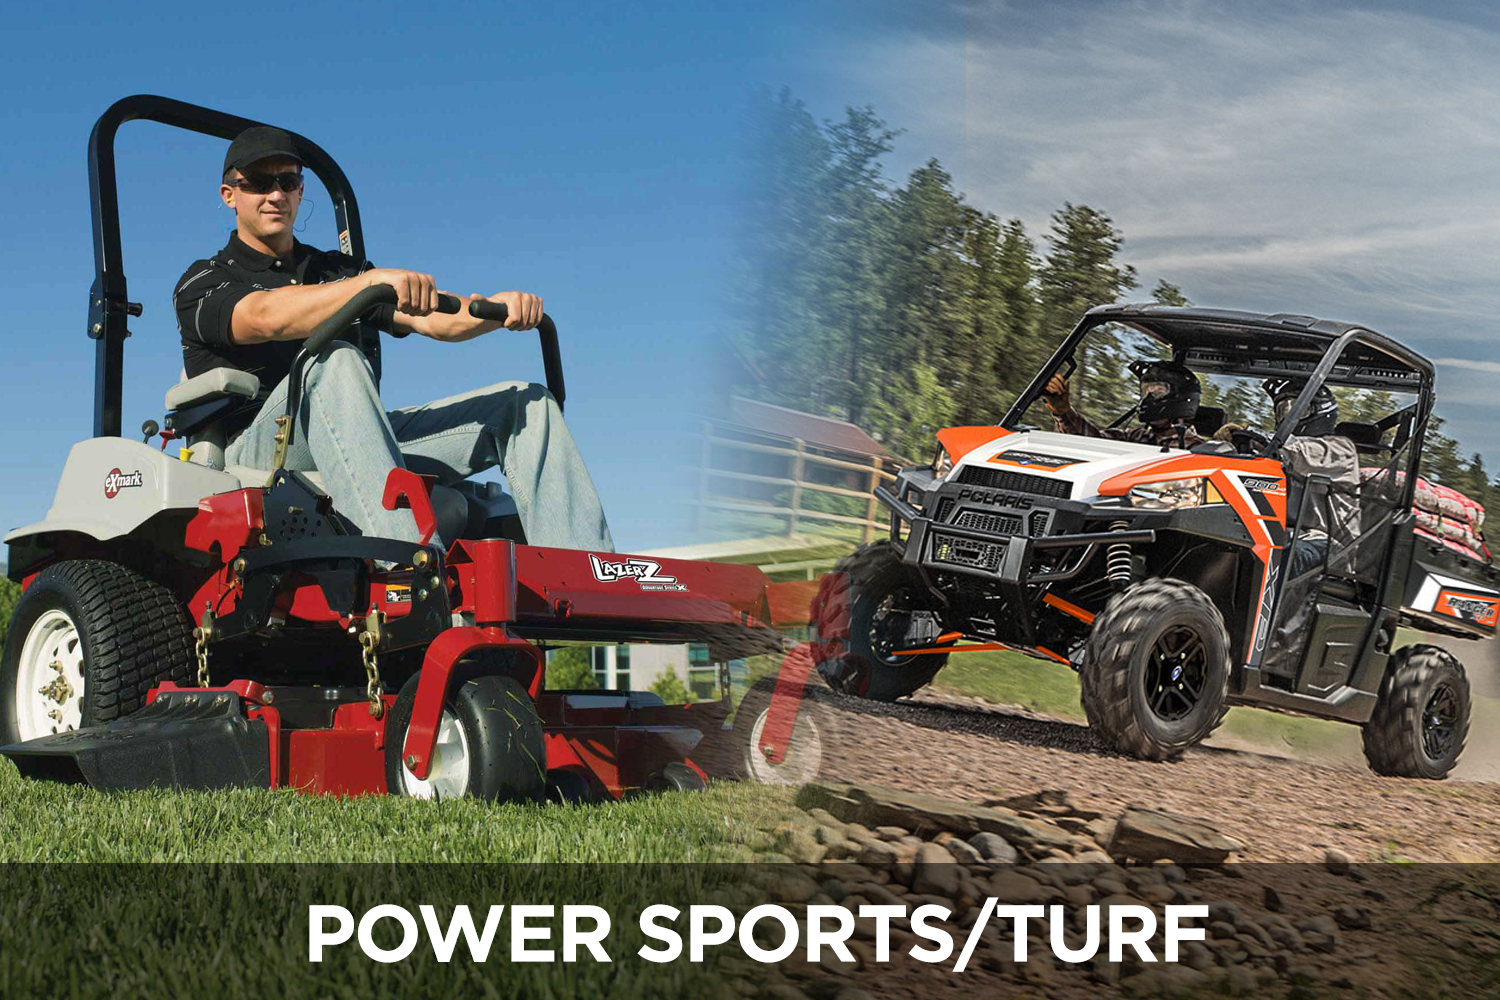 Power Sports/Turf